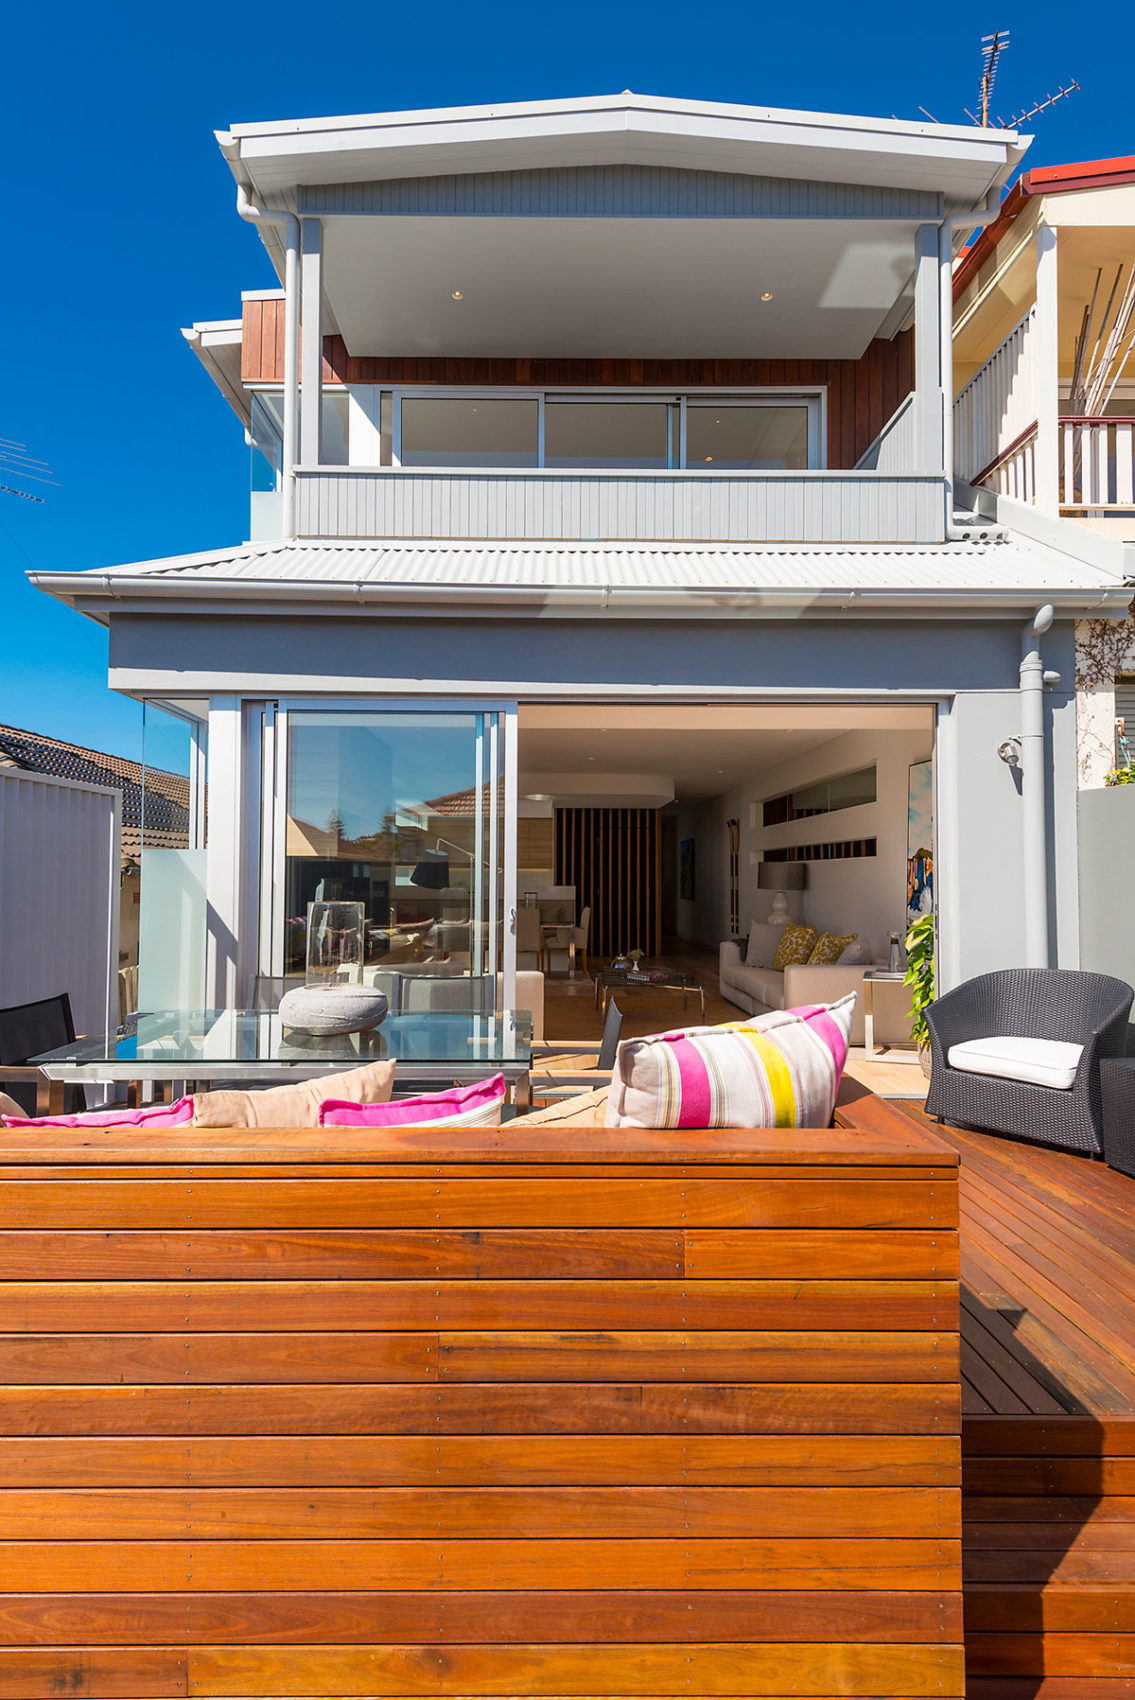 Clovelly Renovation by Look Interior Design (1)